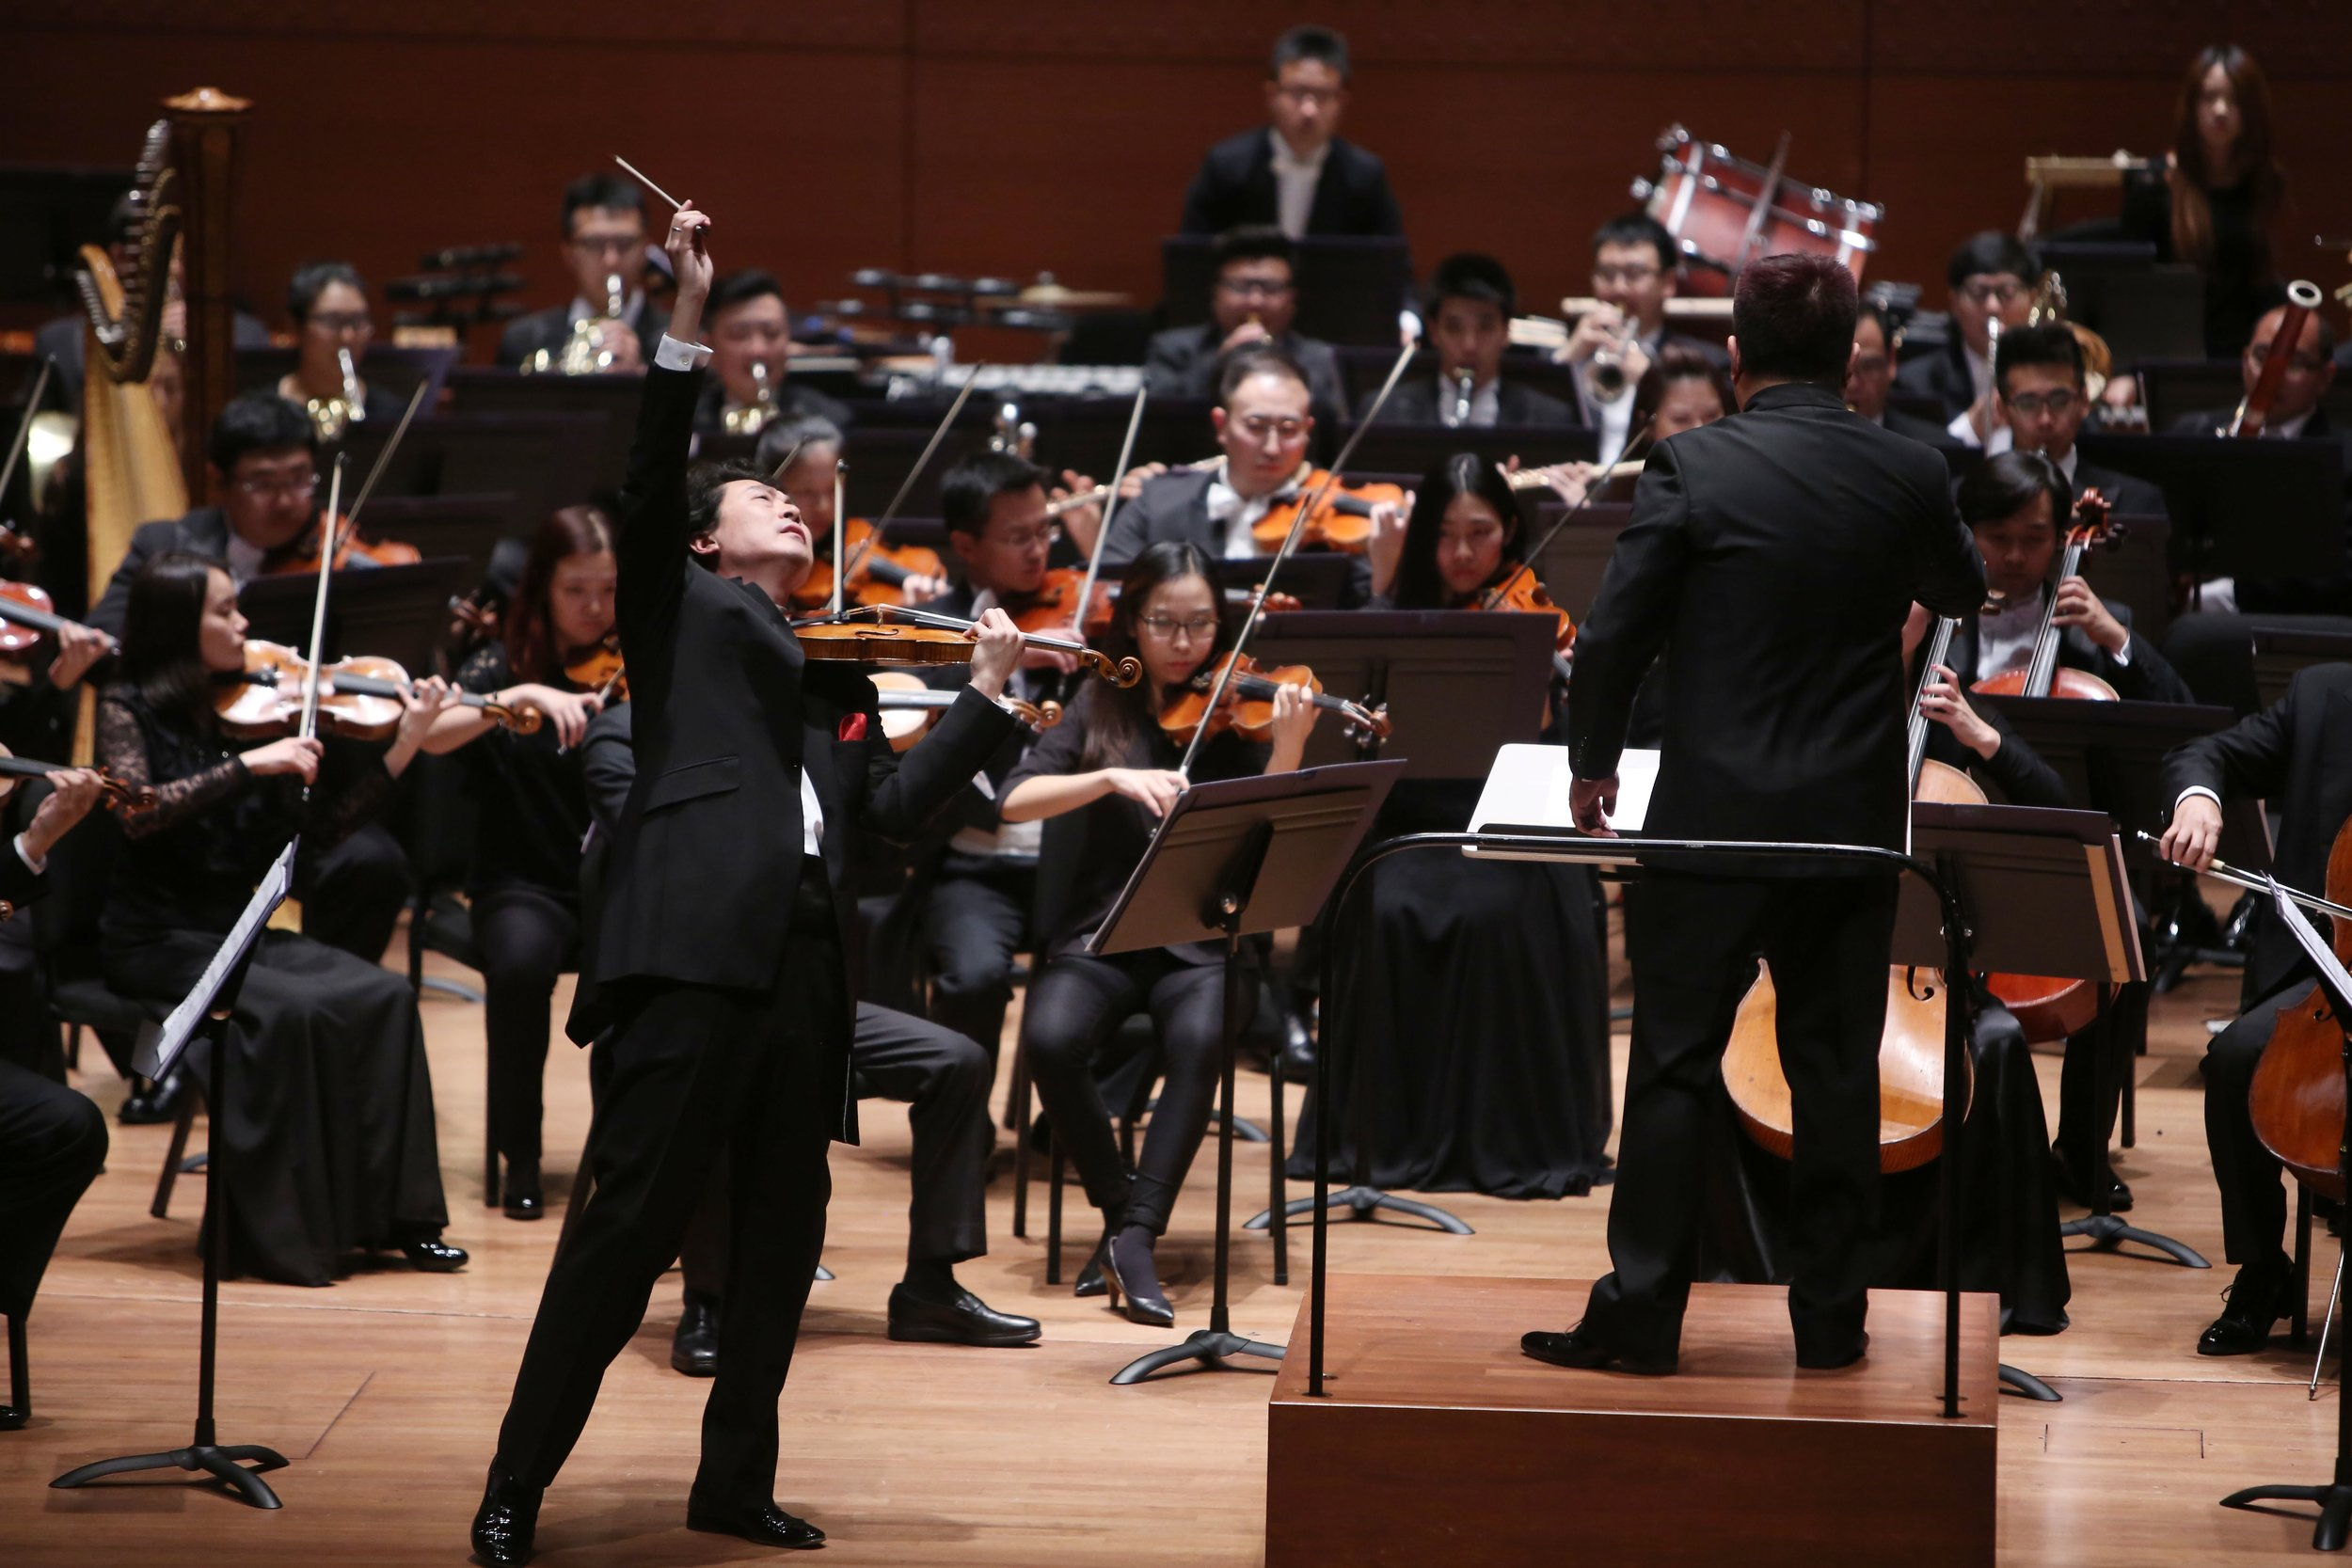 20141105_Alice Tully Hall,Lincoln Center_Concert in New York_摄影肖翊5.jpg